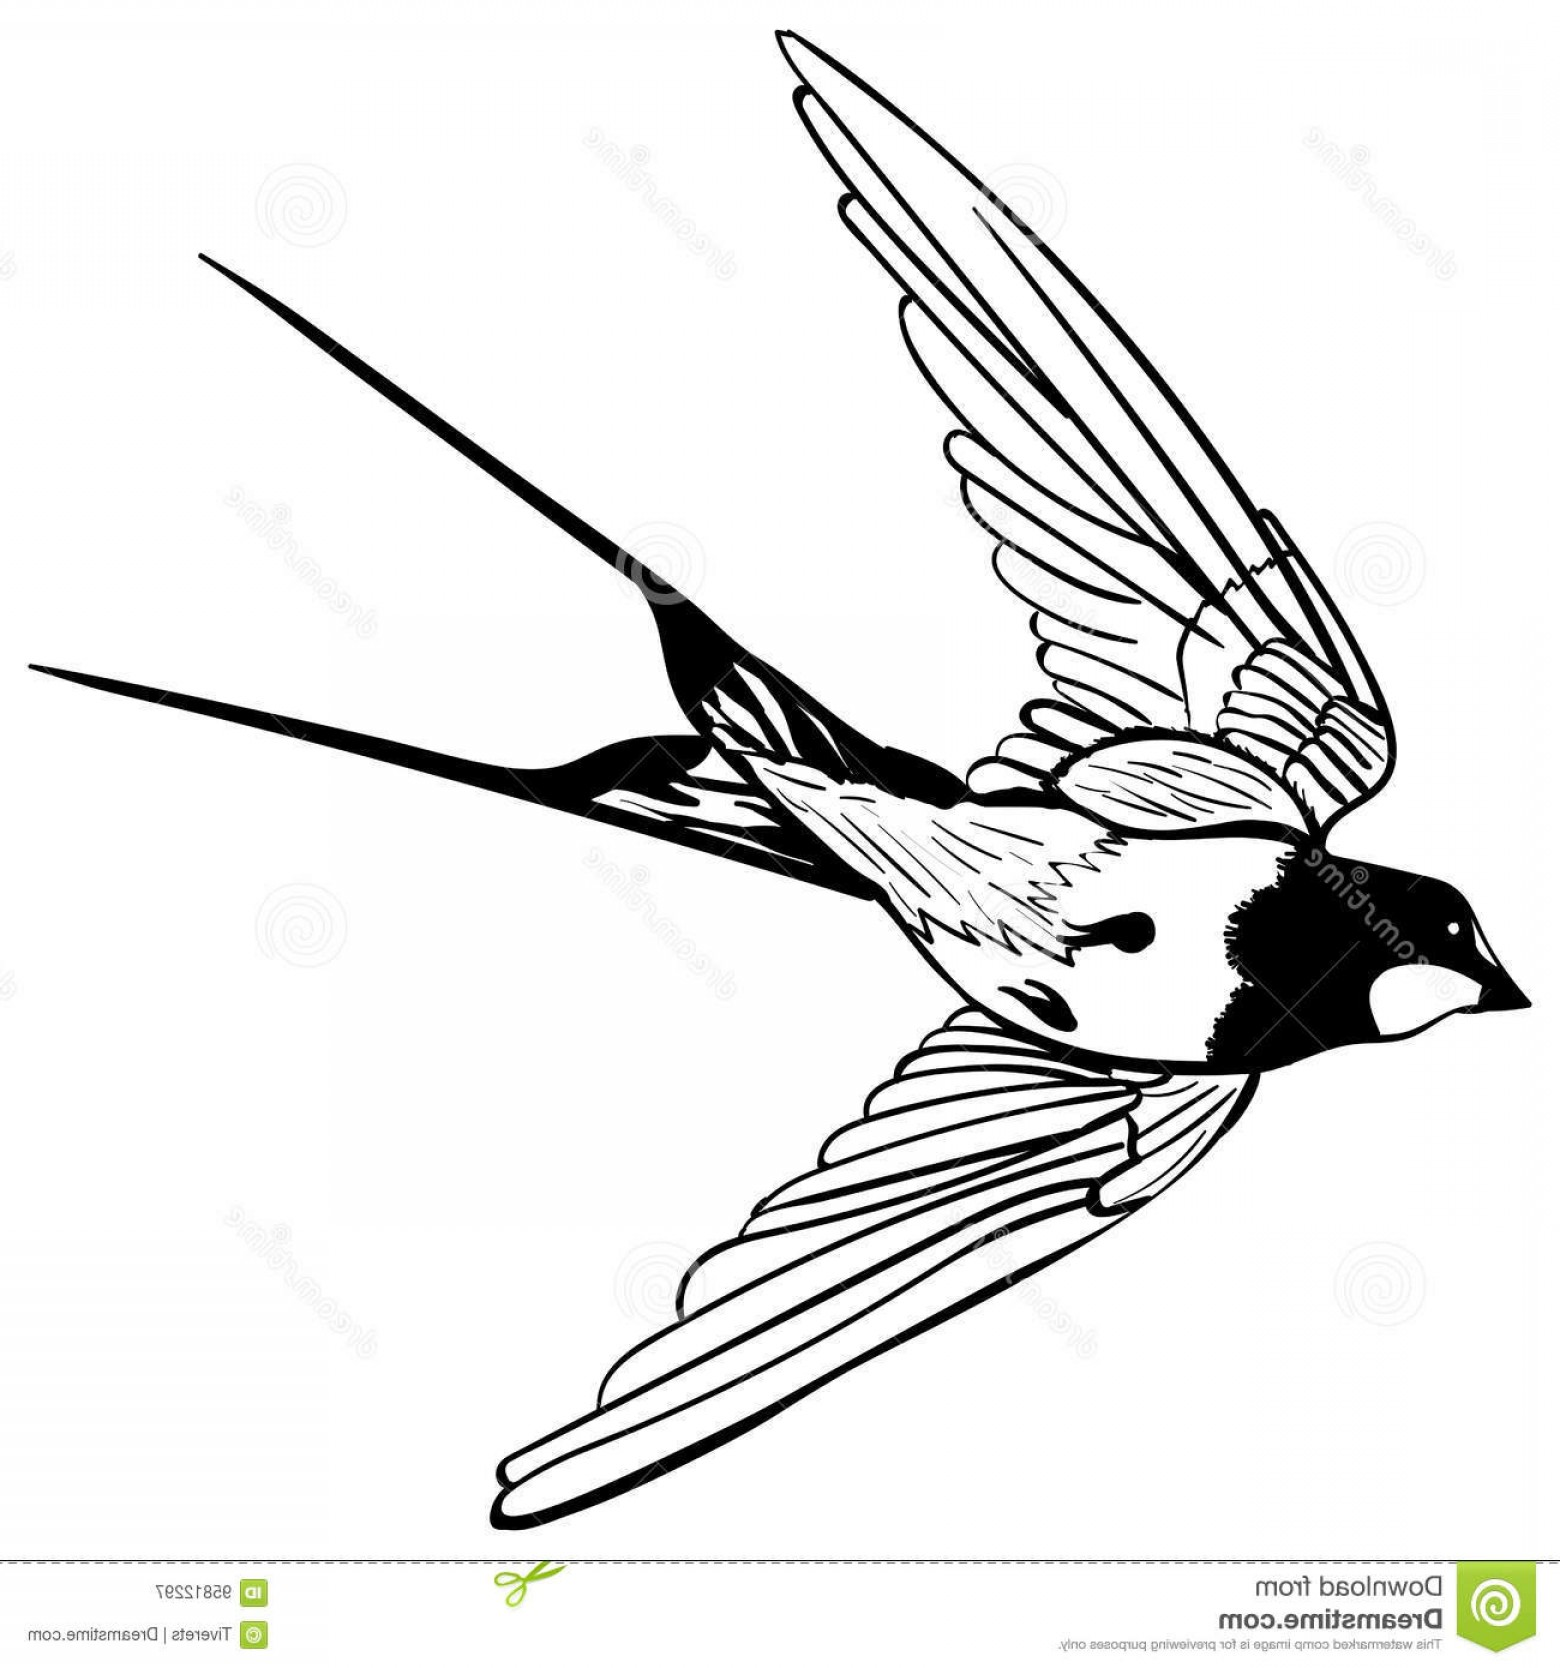 Swallow Vector: Stock Illustration Vector Silhouette Flying Swallow White Background Sketch Tattoo Swallows Black White Image